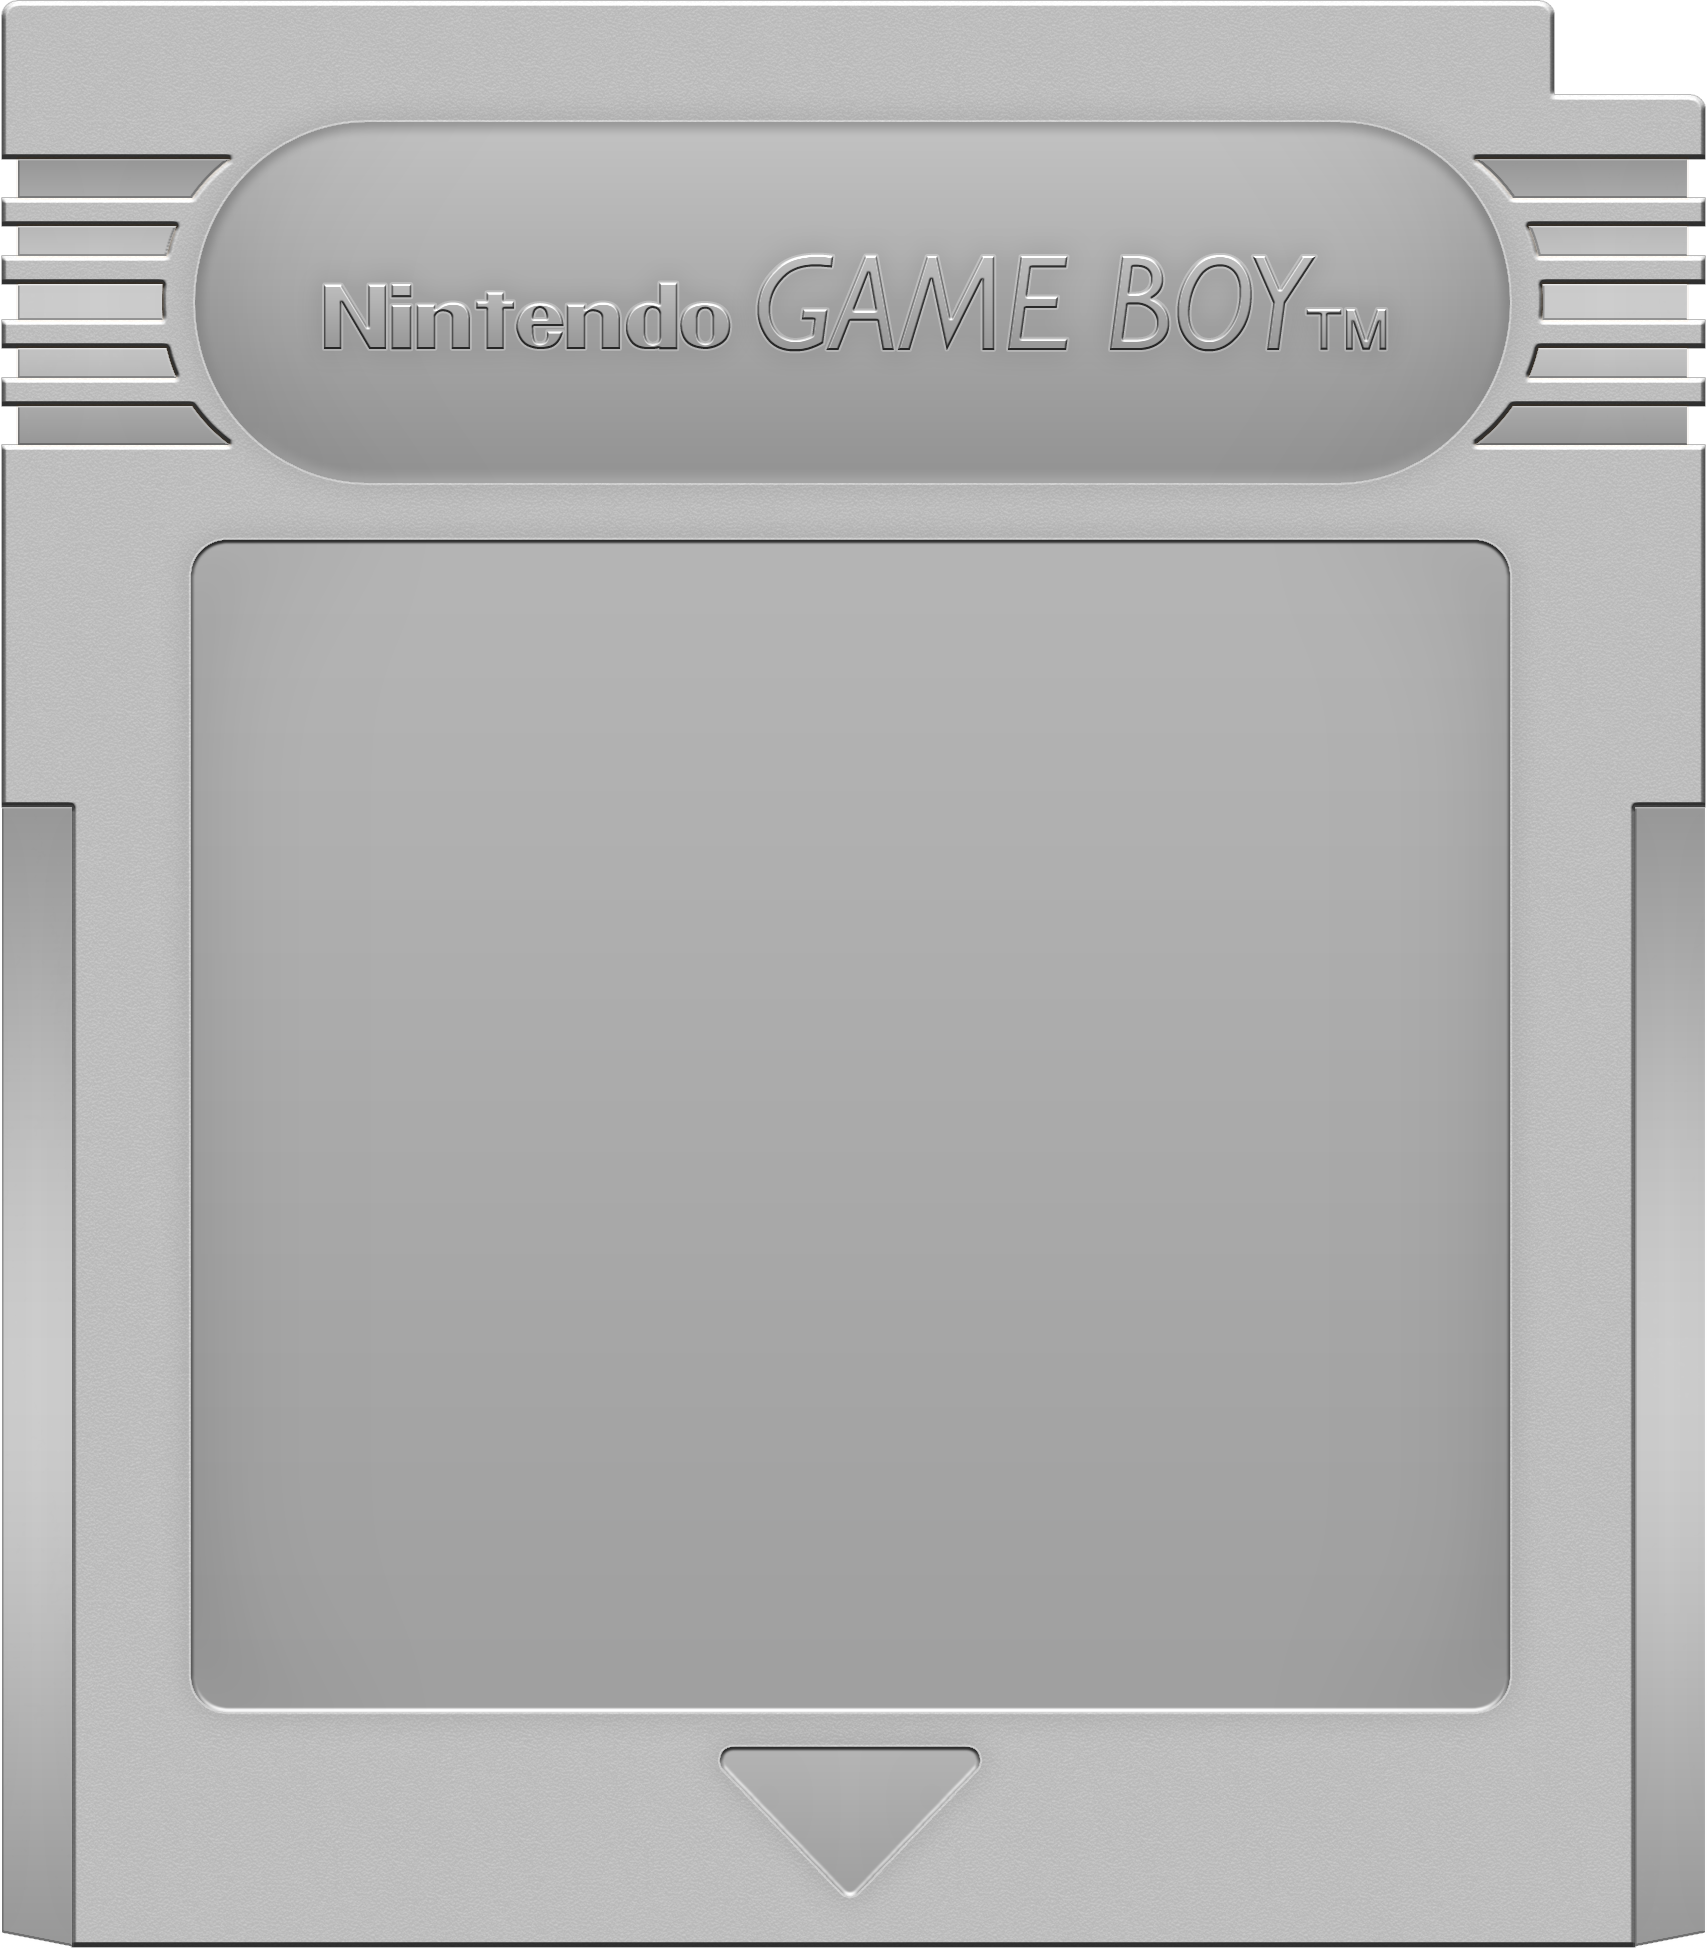 Nintendo Game Boy Cartridge [Silver]